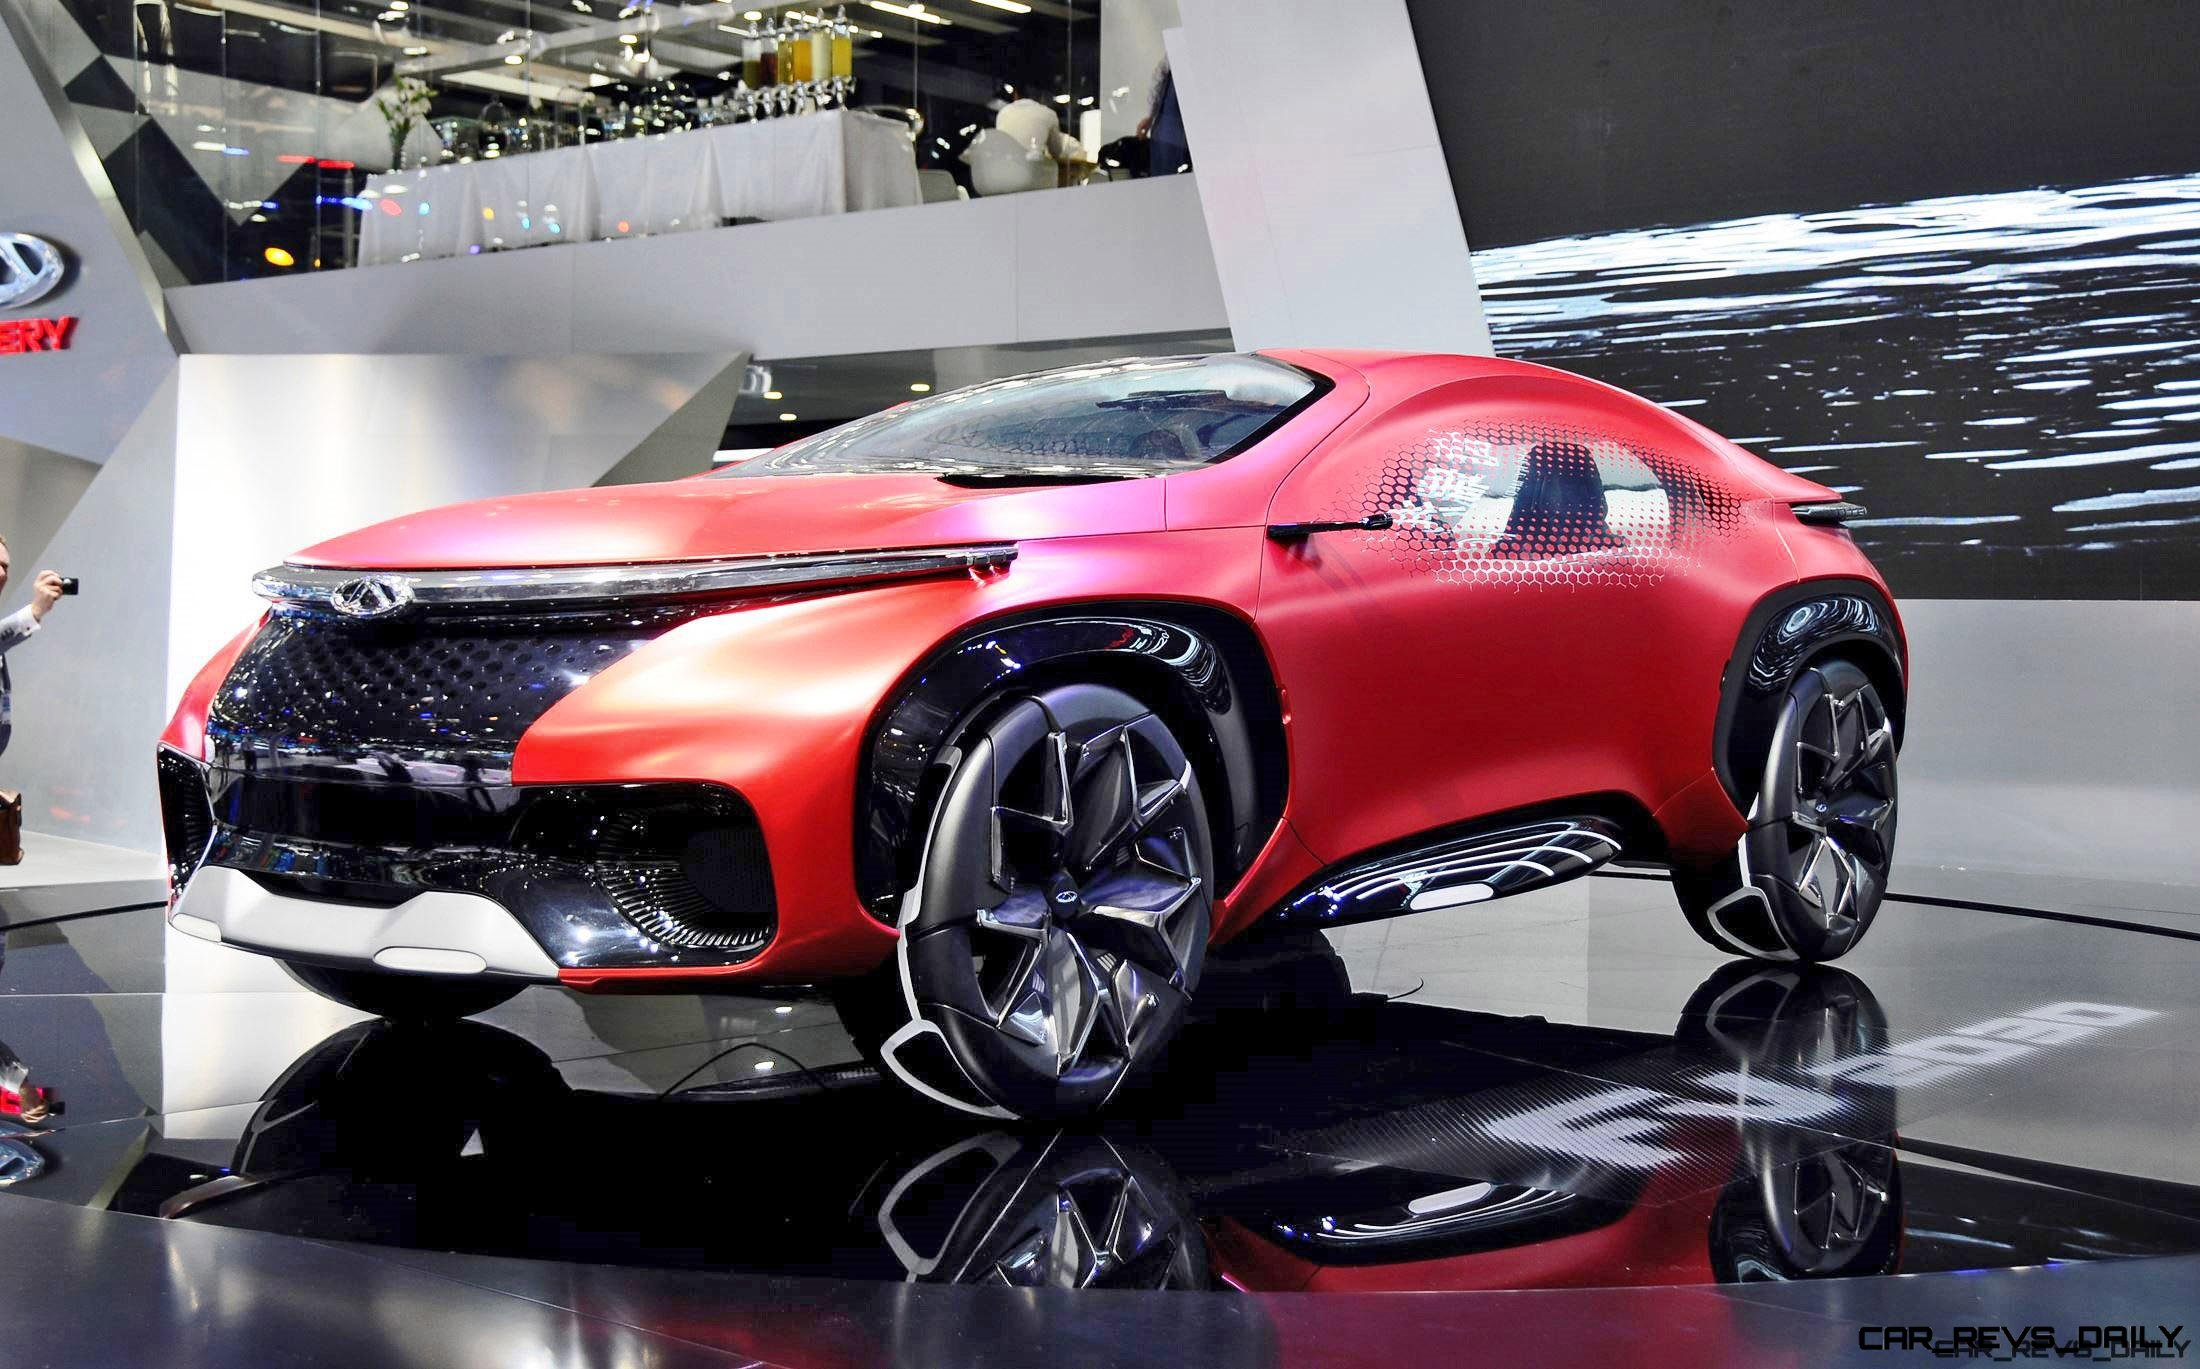 2016 Delhi Auto Expo Top 10 Concept Cars: Top 10 Chinese CONCEPT Cars And SUVs! » CUSTOMS